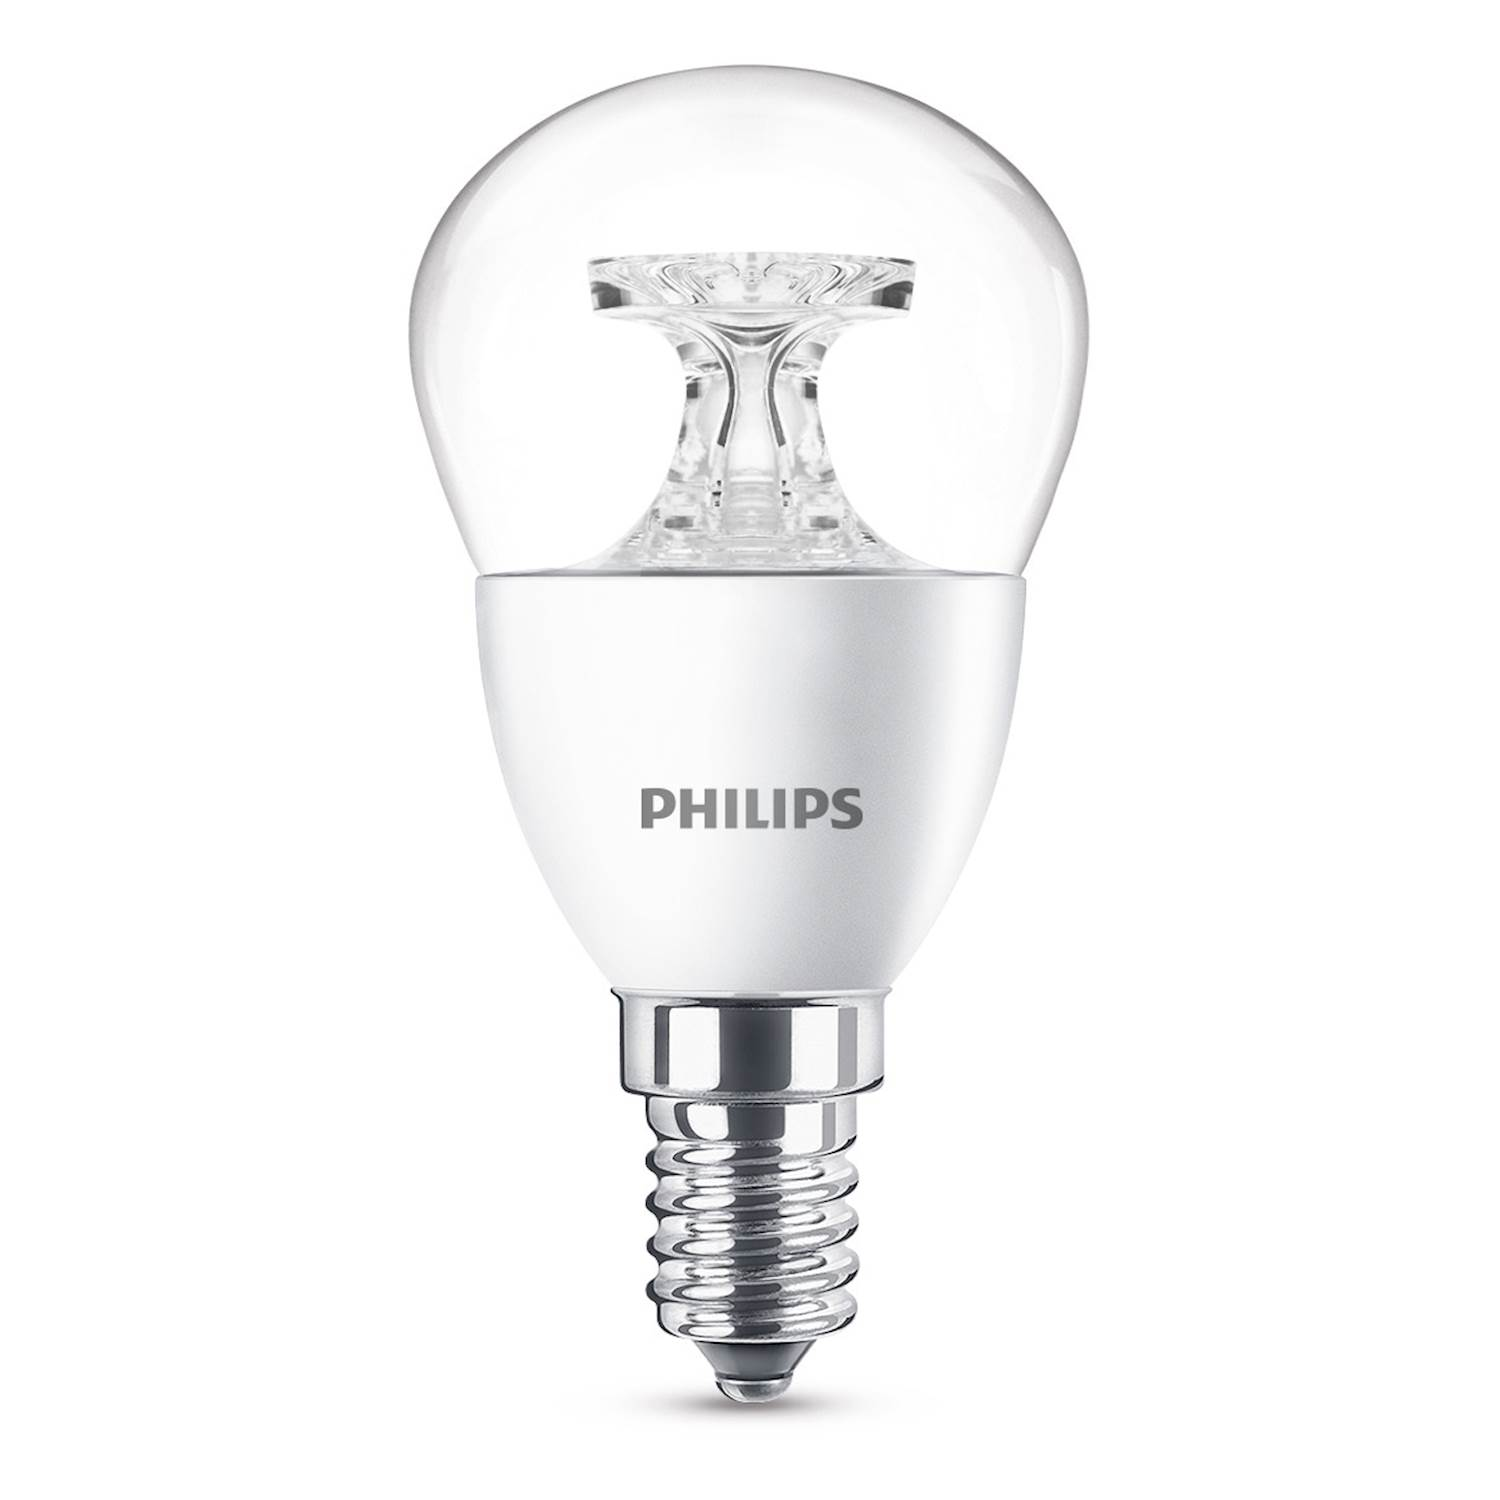 Philips LED KLOT 5,5W VV KL ND